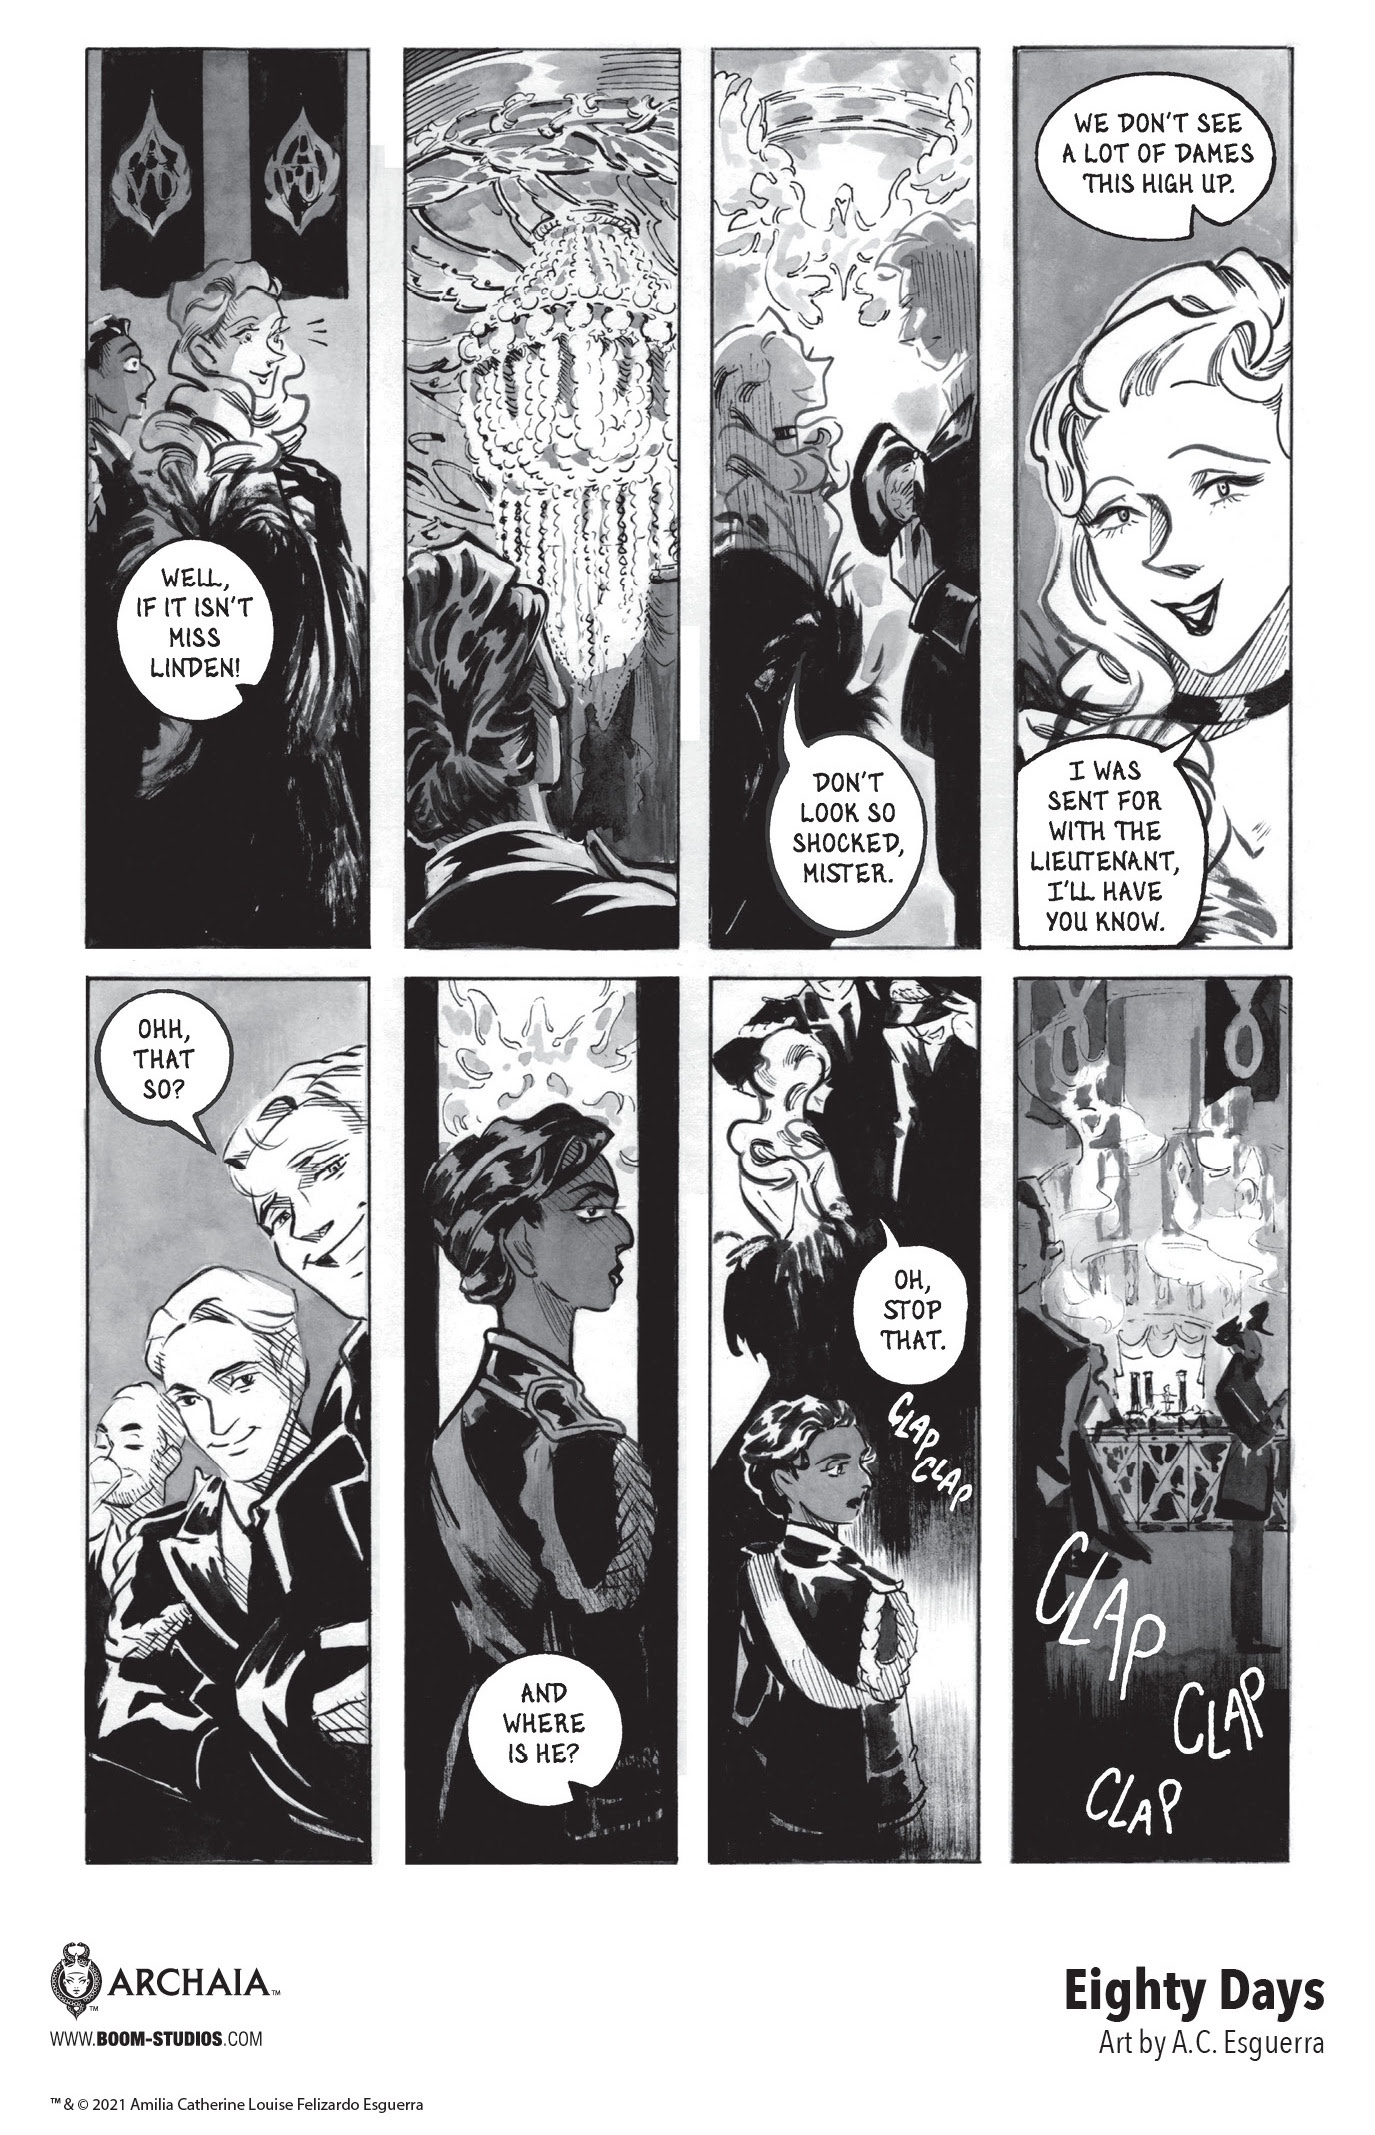 , Navigate Shifting Allegiances in A.C. Esguerra's EIGHTY DAYS, The Indie Comix Dispatch